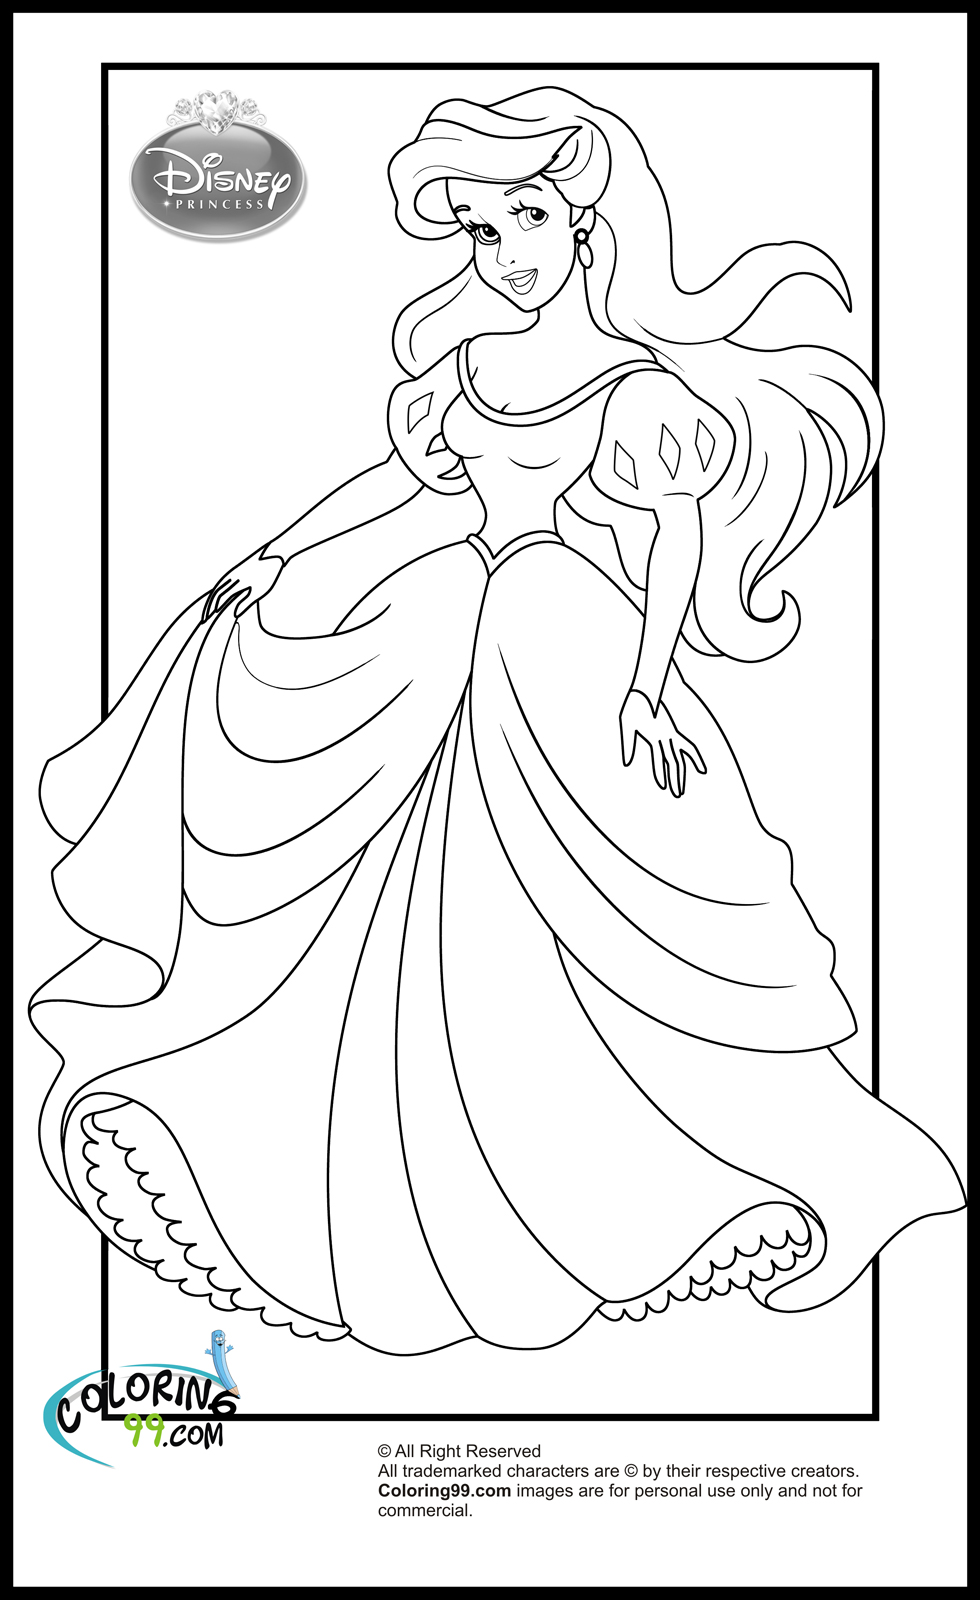 Disney princess coloring pages minister coloring for Free princess ariel coloring pages